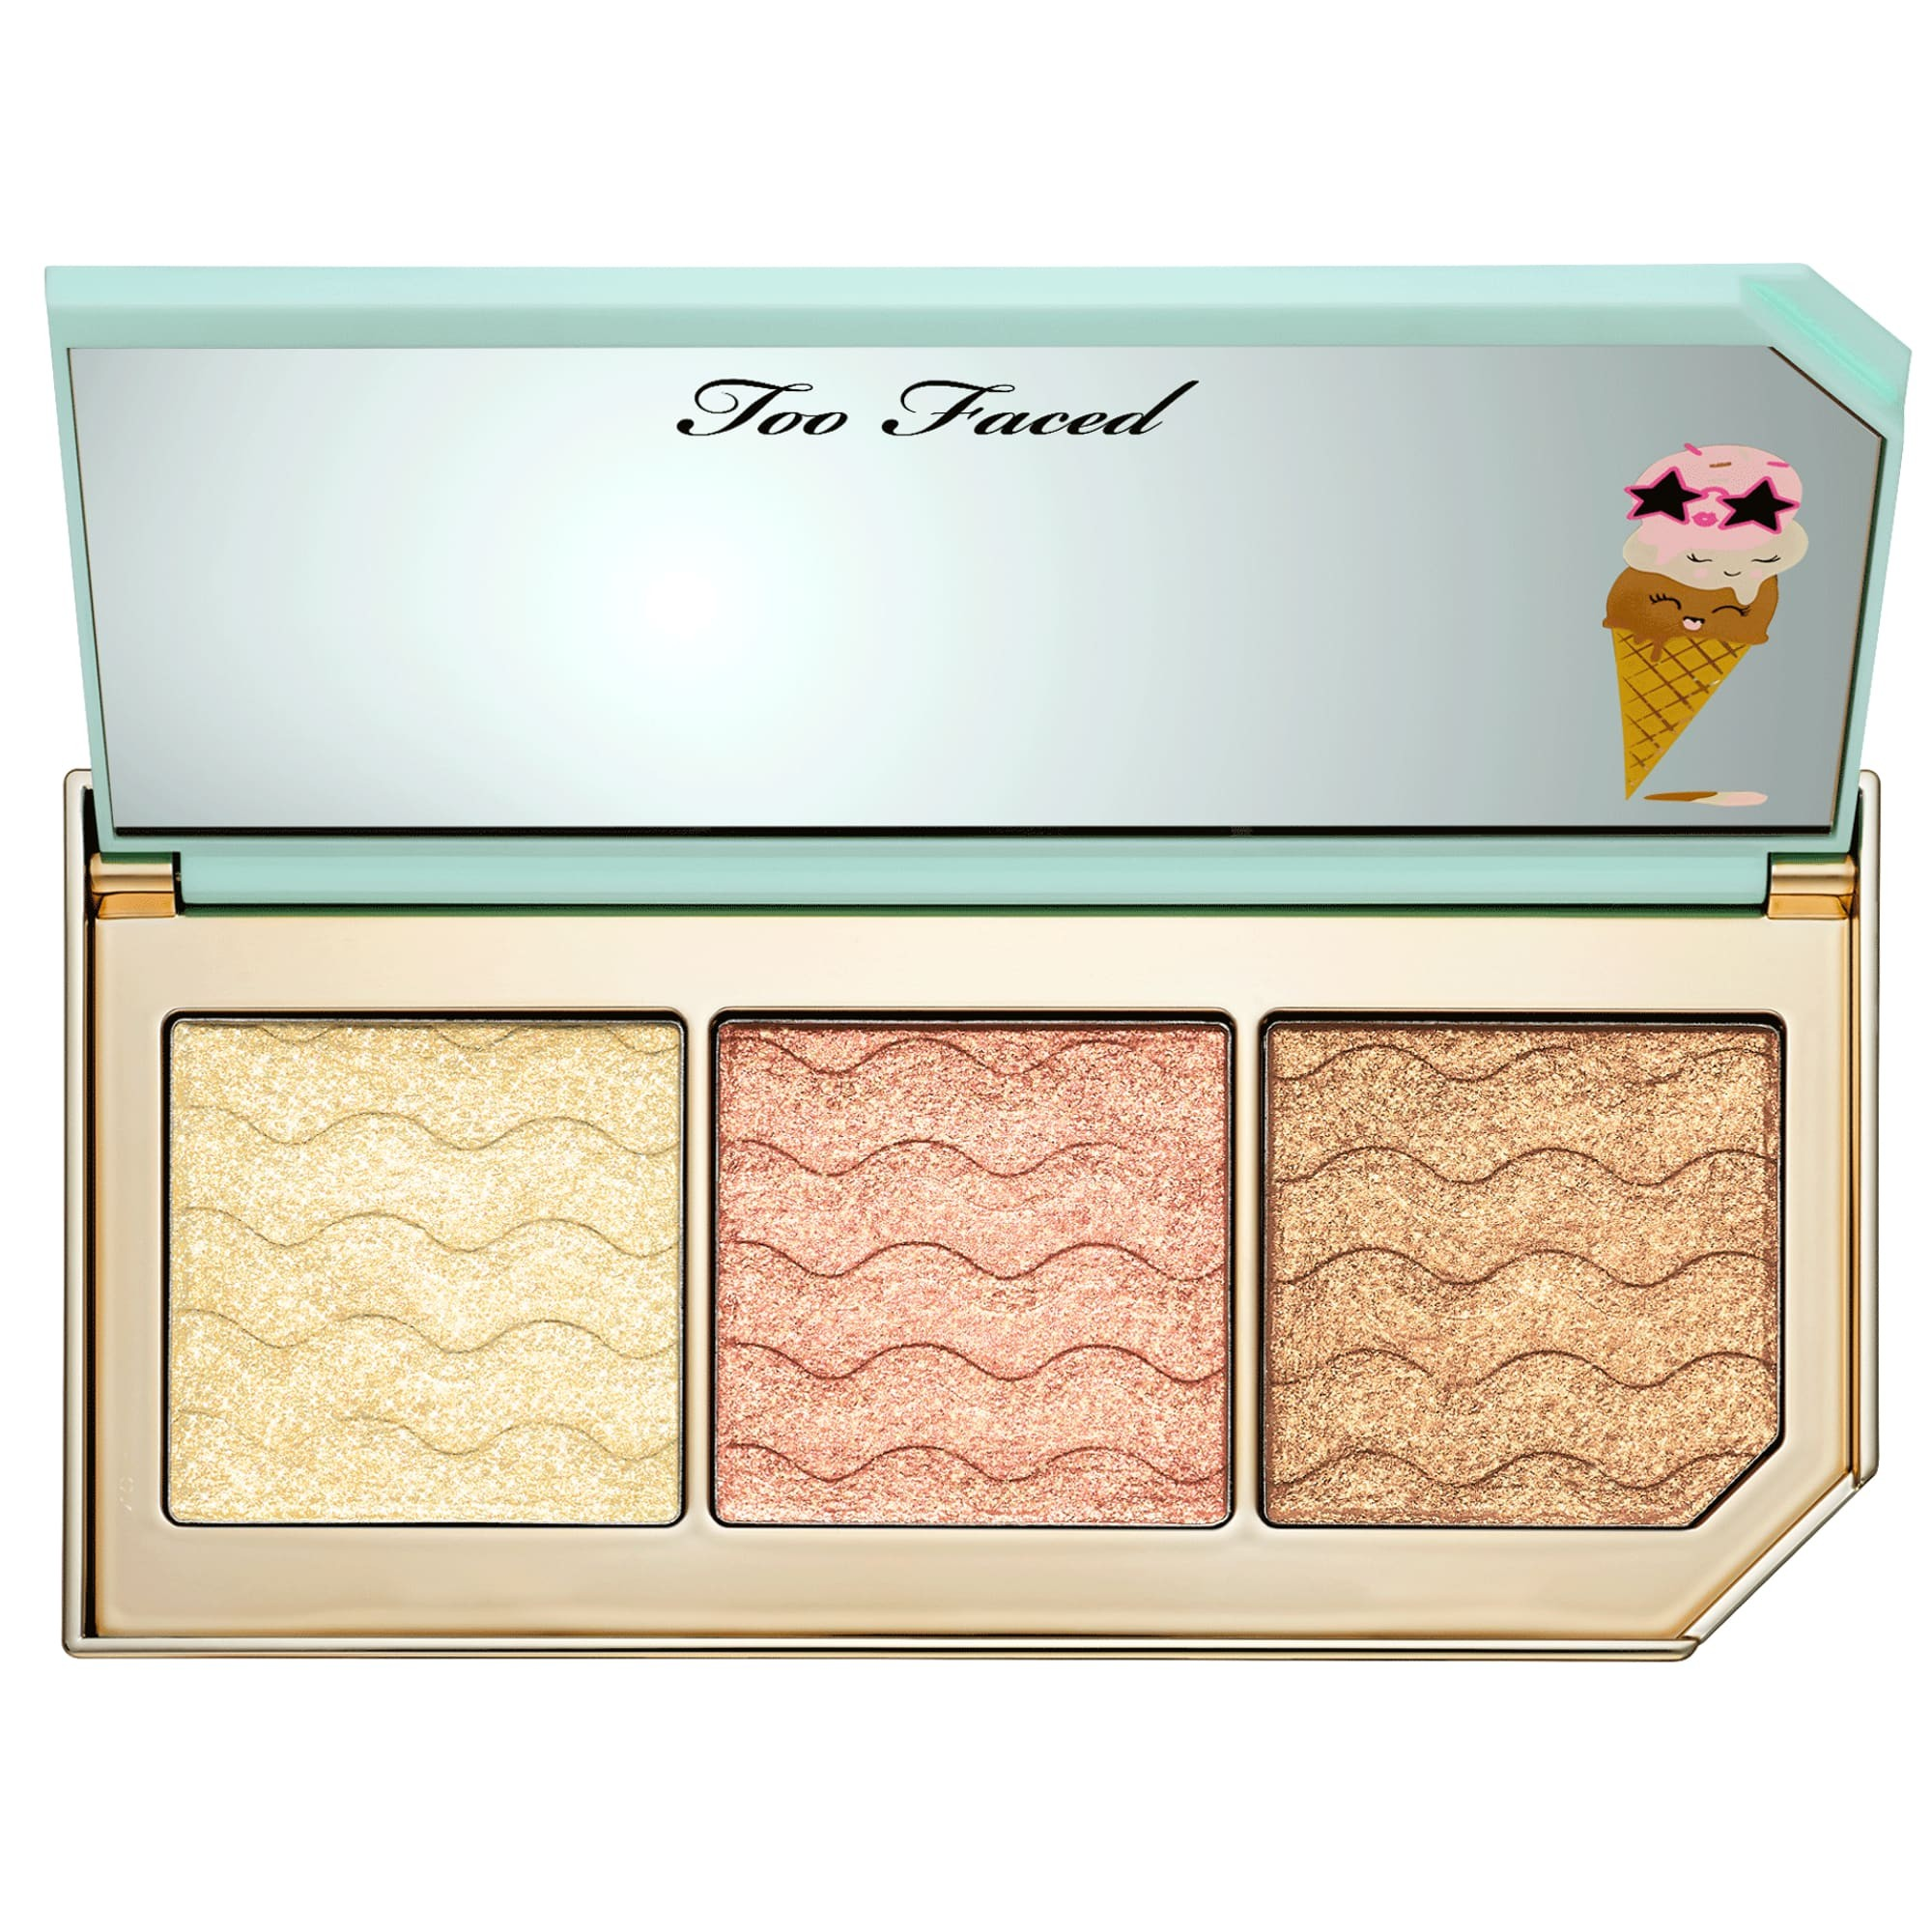 Too Faced Triple Scoop Hyper-Reflective Highlighting Palette